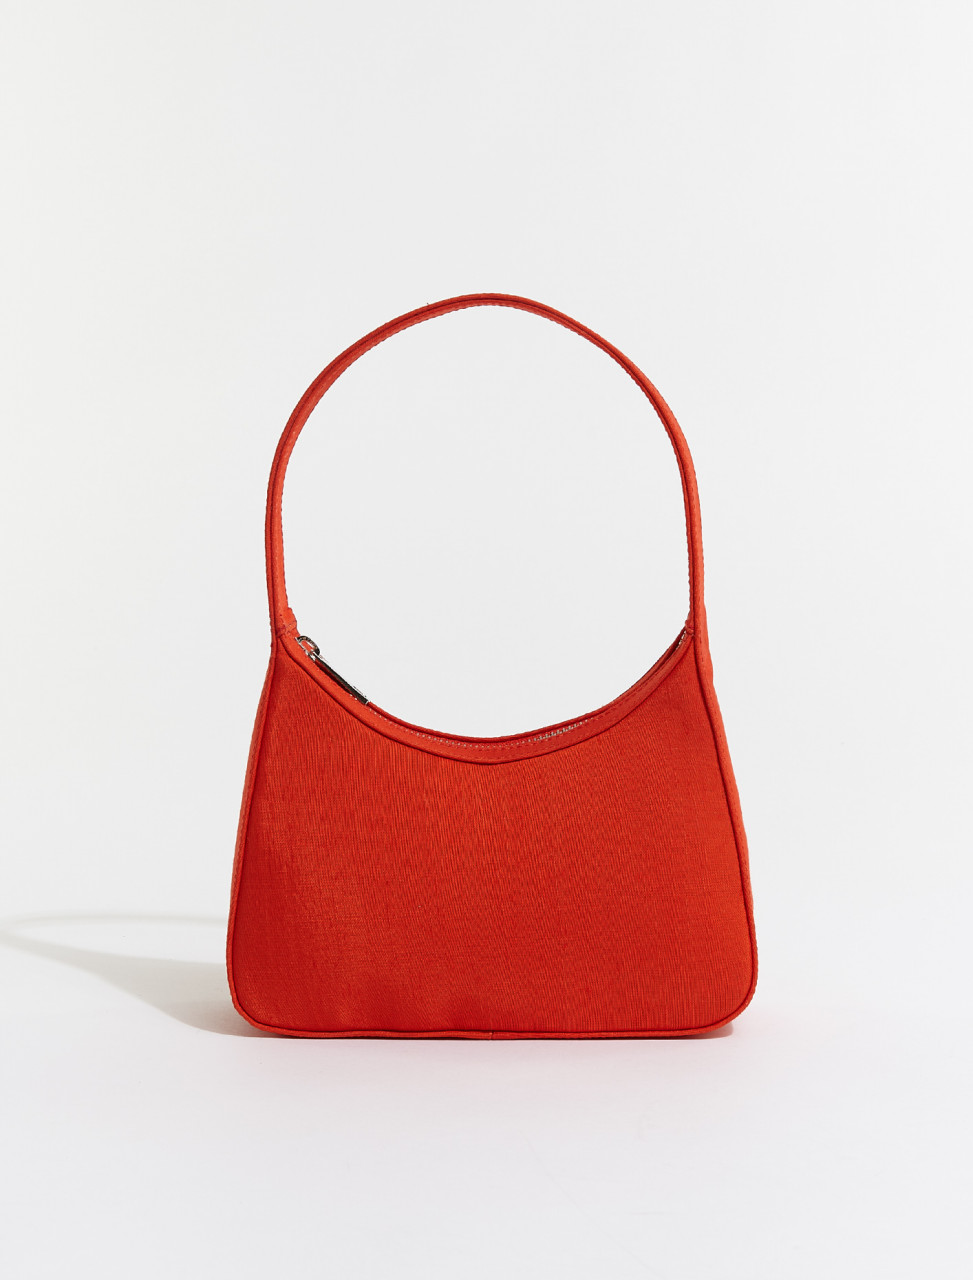 PBM009-250 PALOMA WOOL DARSEY WOVEN BAG IN RED